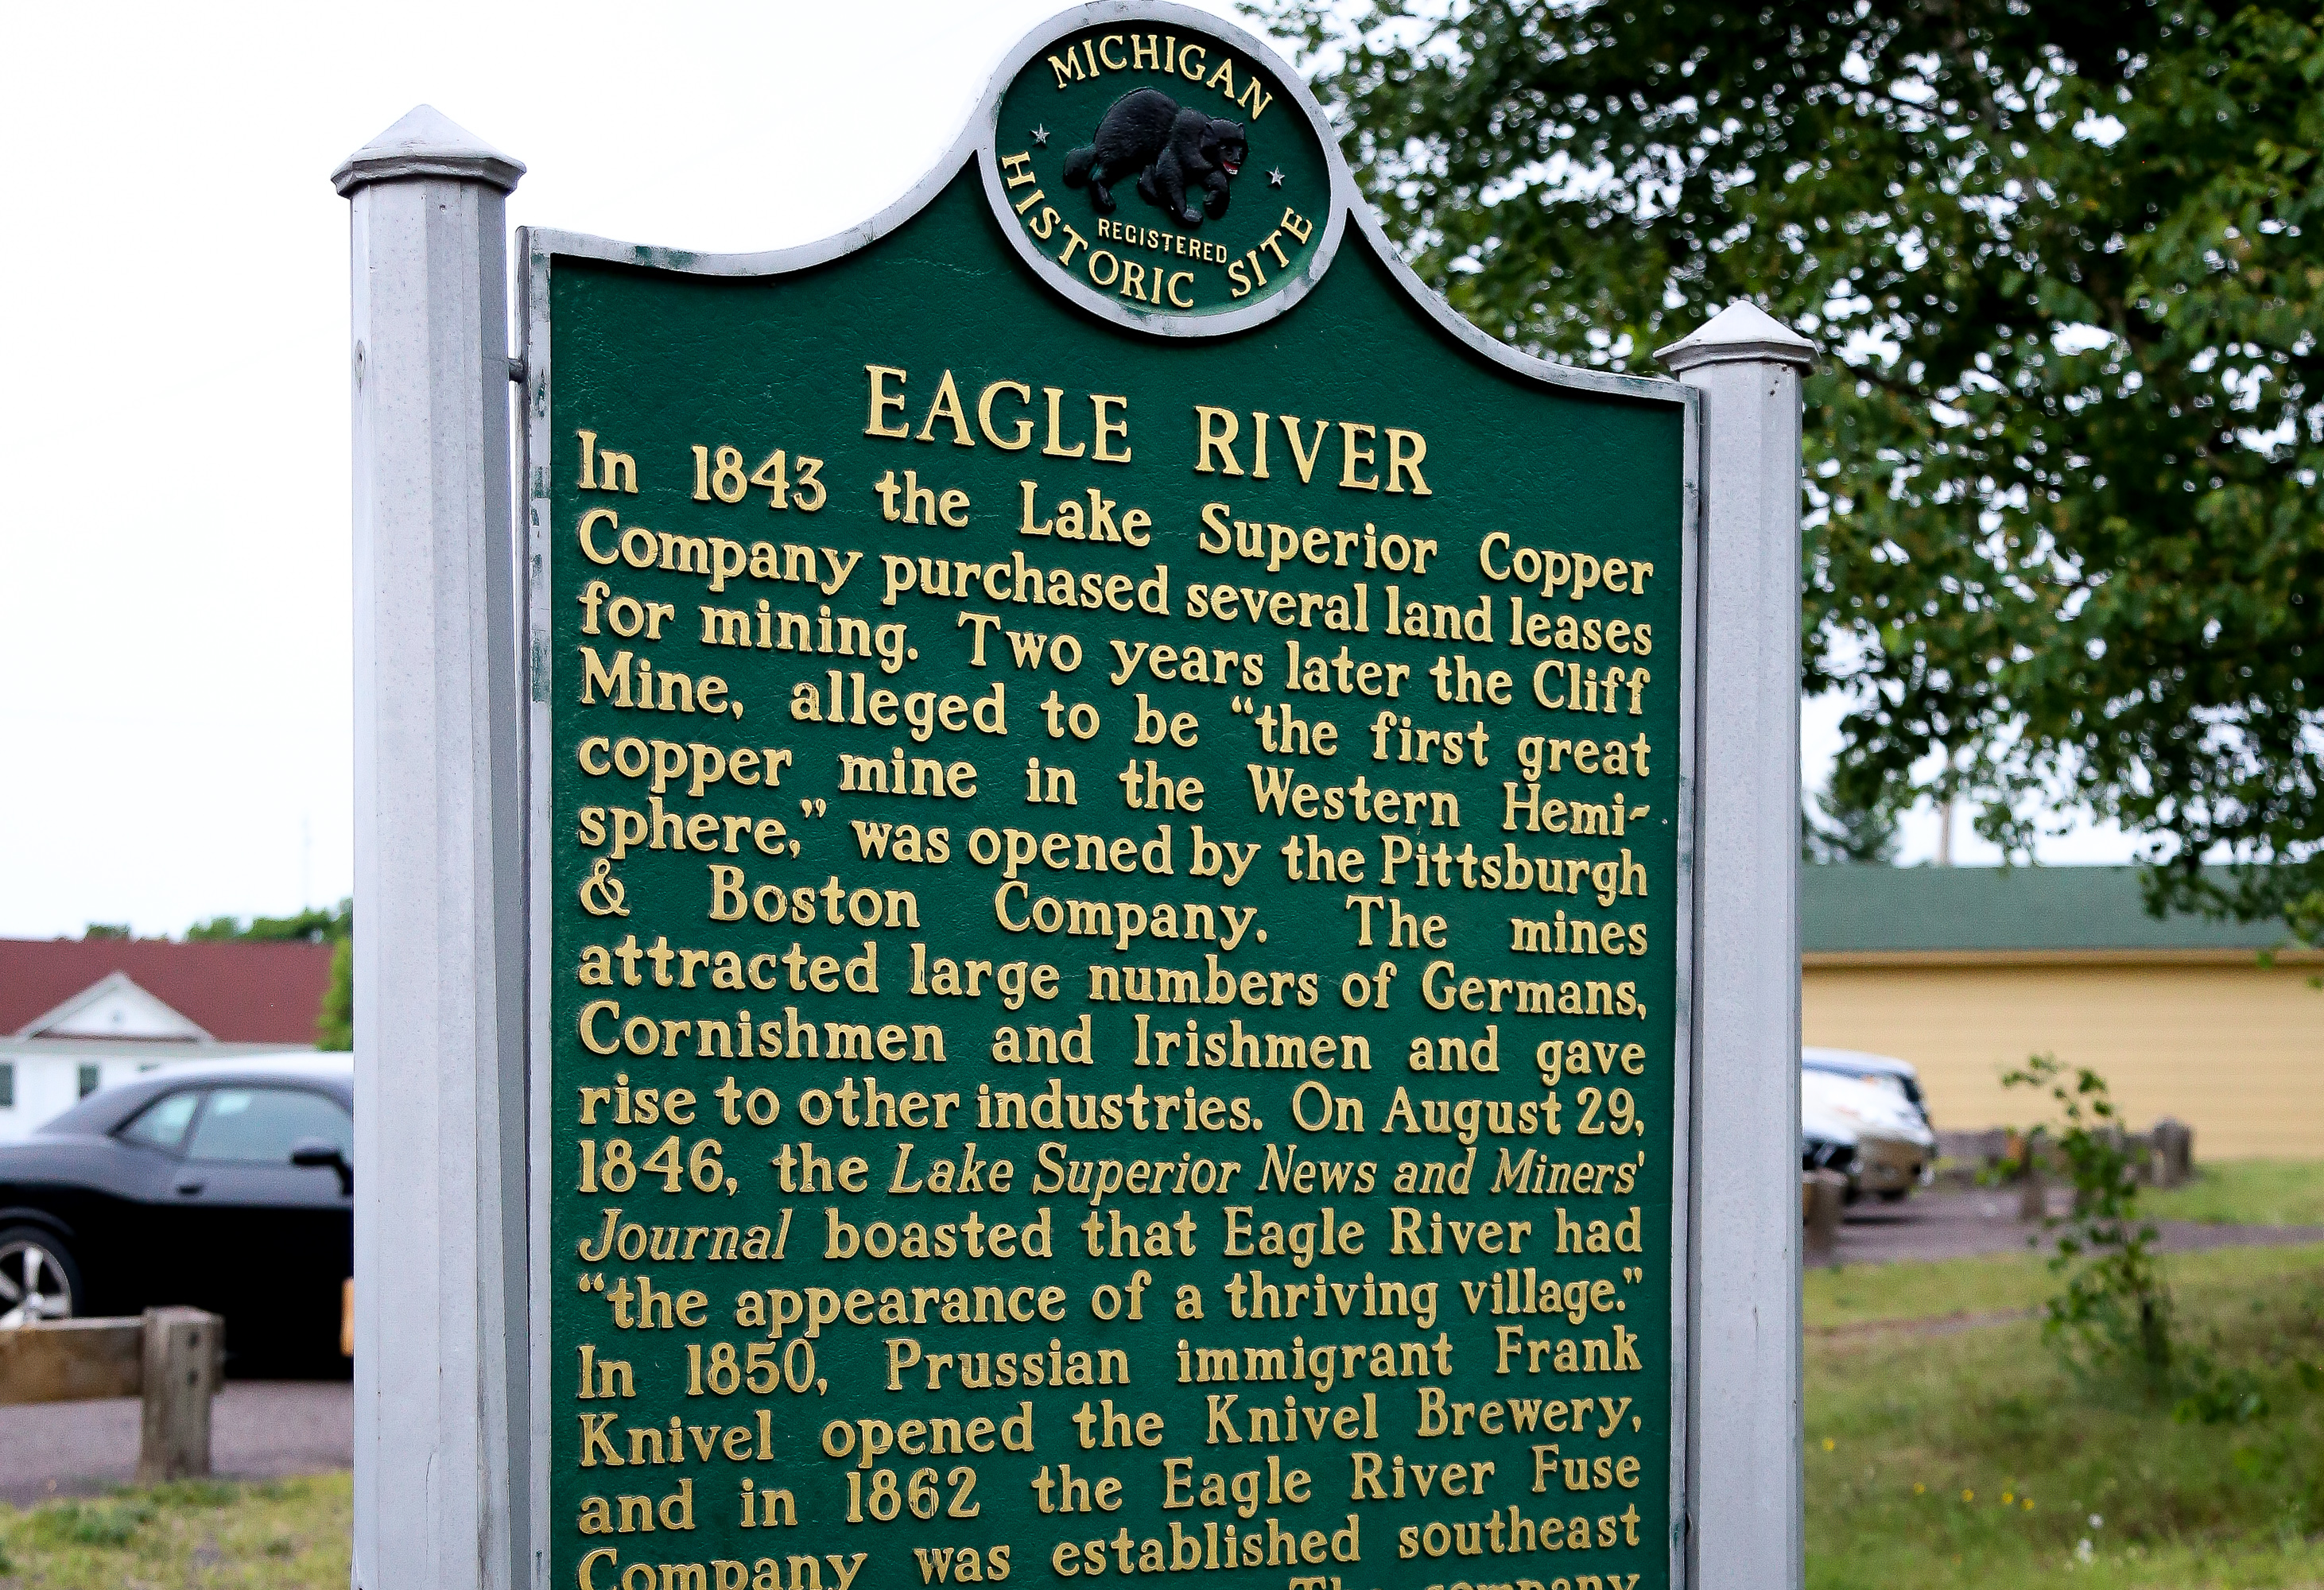 Local Keweenaw County history near the Wilderness Resort in Lac La Belle Michigan